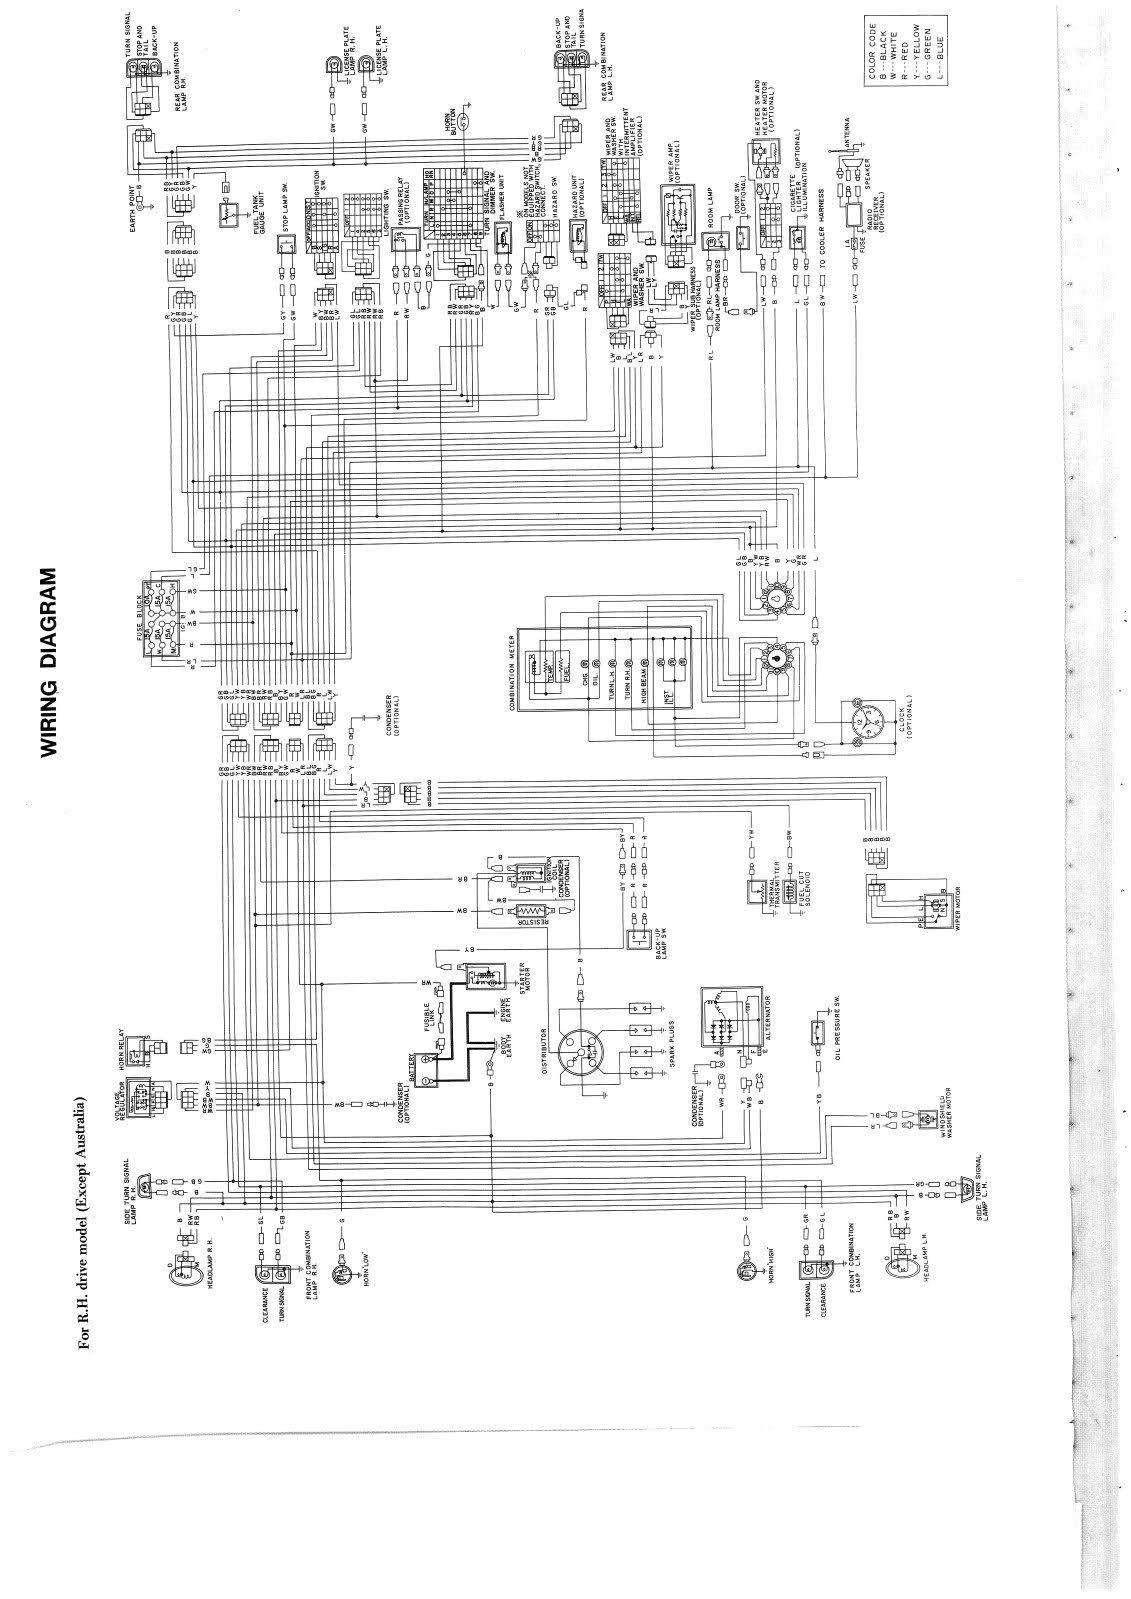 Nissan 1400 bakkie wiring diagram free download wiring diagrams nissan 1400 bakkie wiring diagram wiring diagram modified nissan bakkie 1400 nissan 1400 bakkie wiring diagram asfbconference2016 Image collections